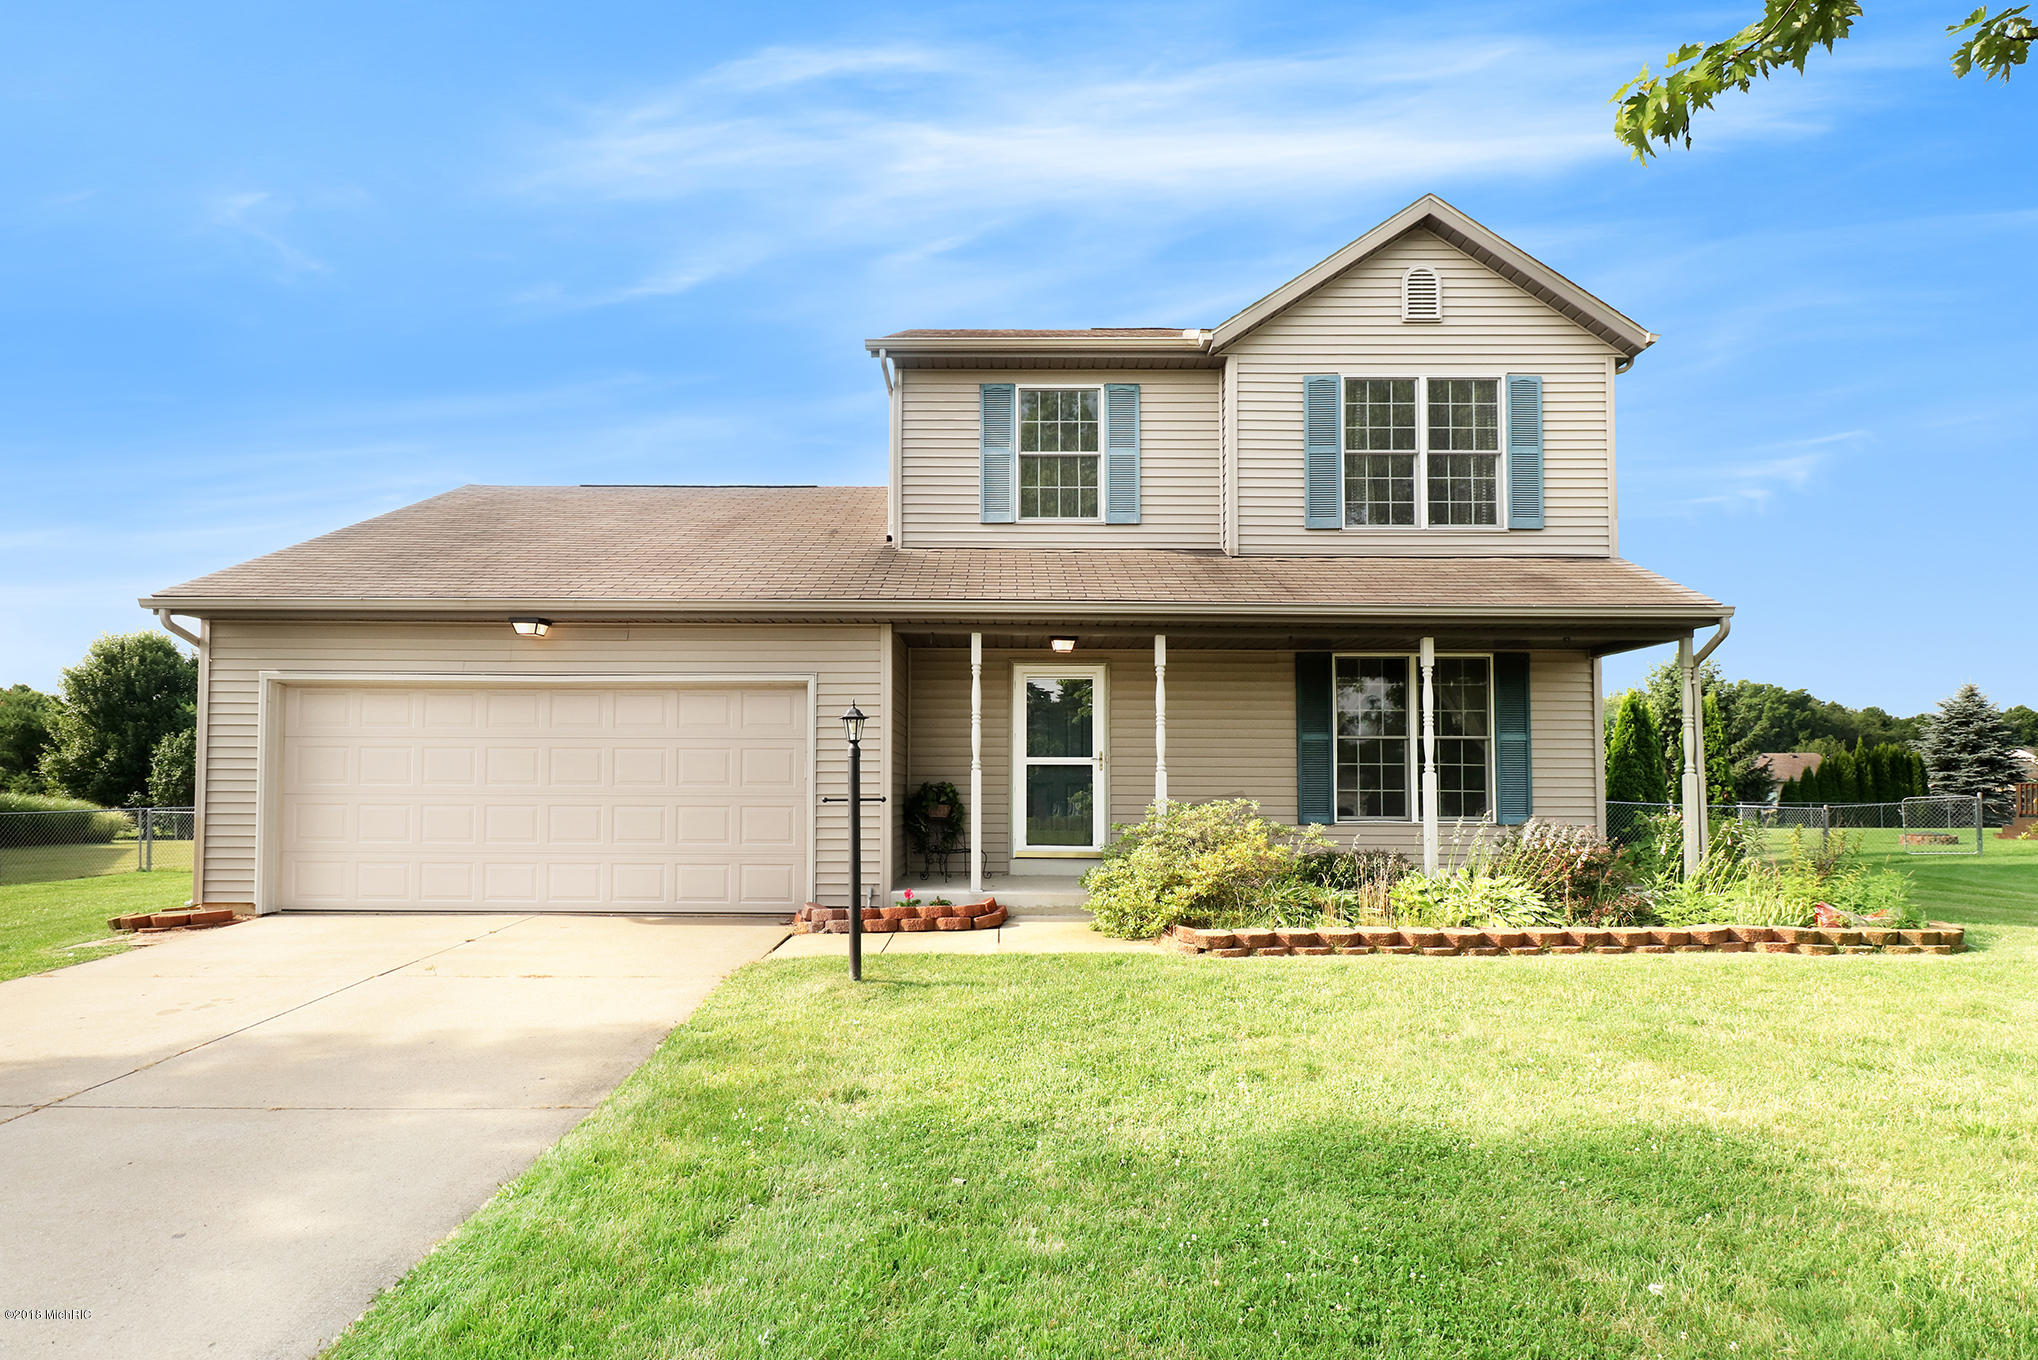 This Beautiful 4 Bedroom Homes Includes 2.5 Baths, Main Level Laundry And A  Partially Finished Basement. Enjoy A Large Master Bedroom With Vaulted  Ceilings.